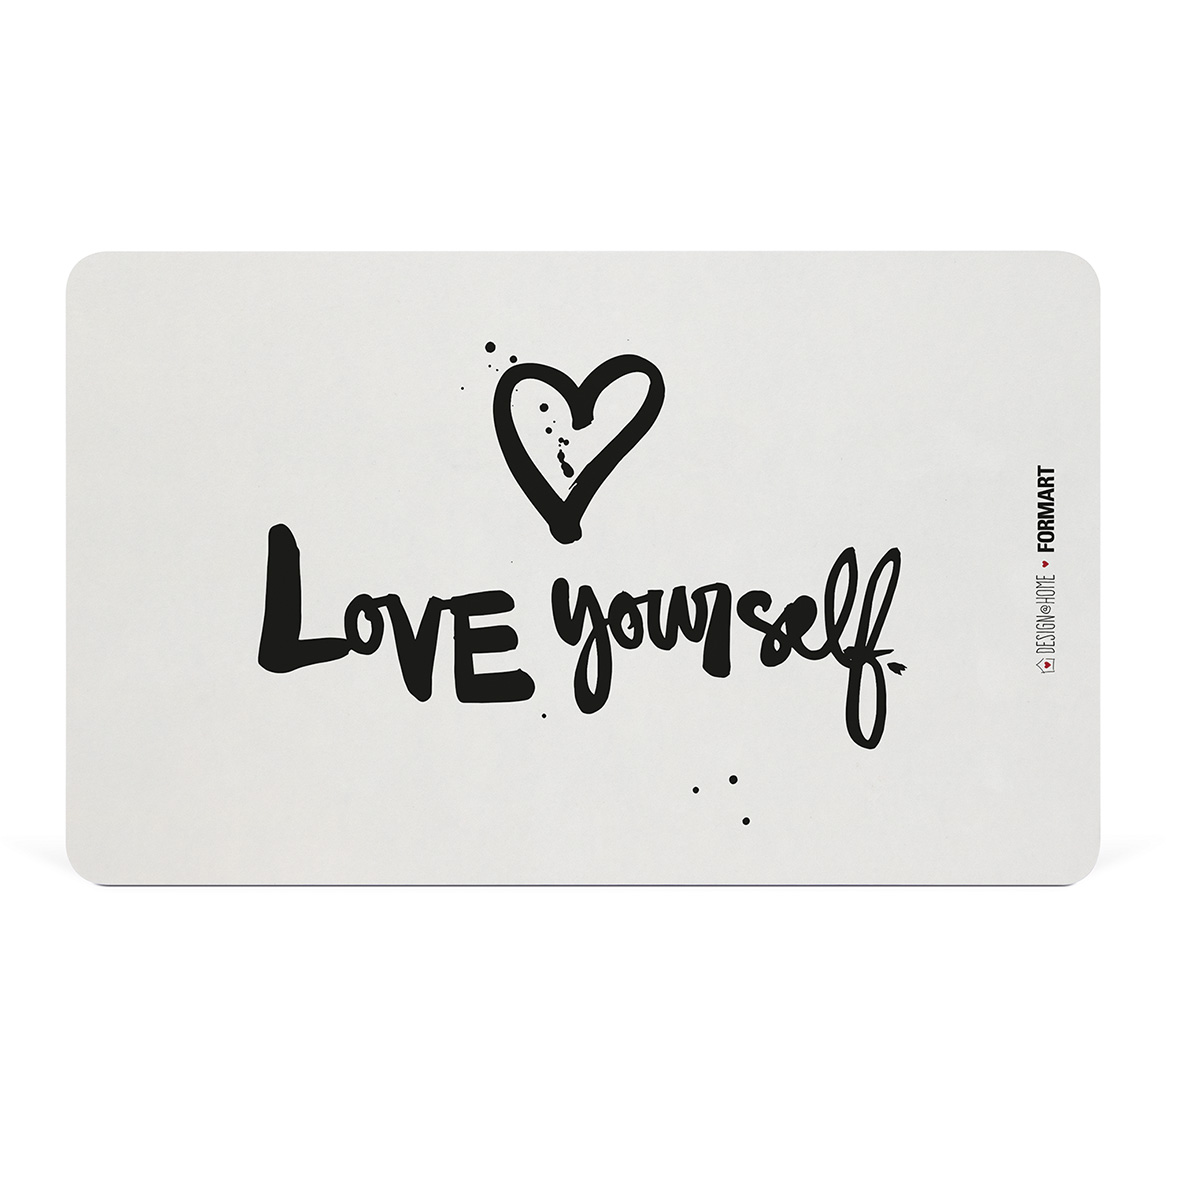 Love yourself Tray D@H